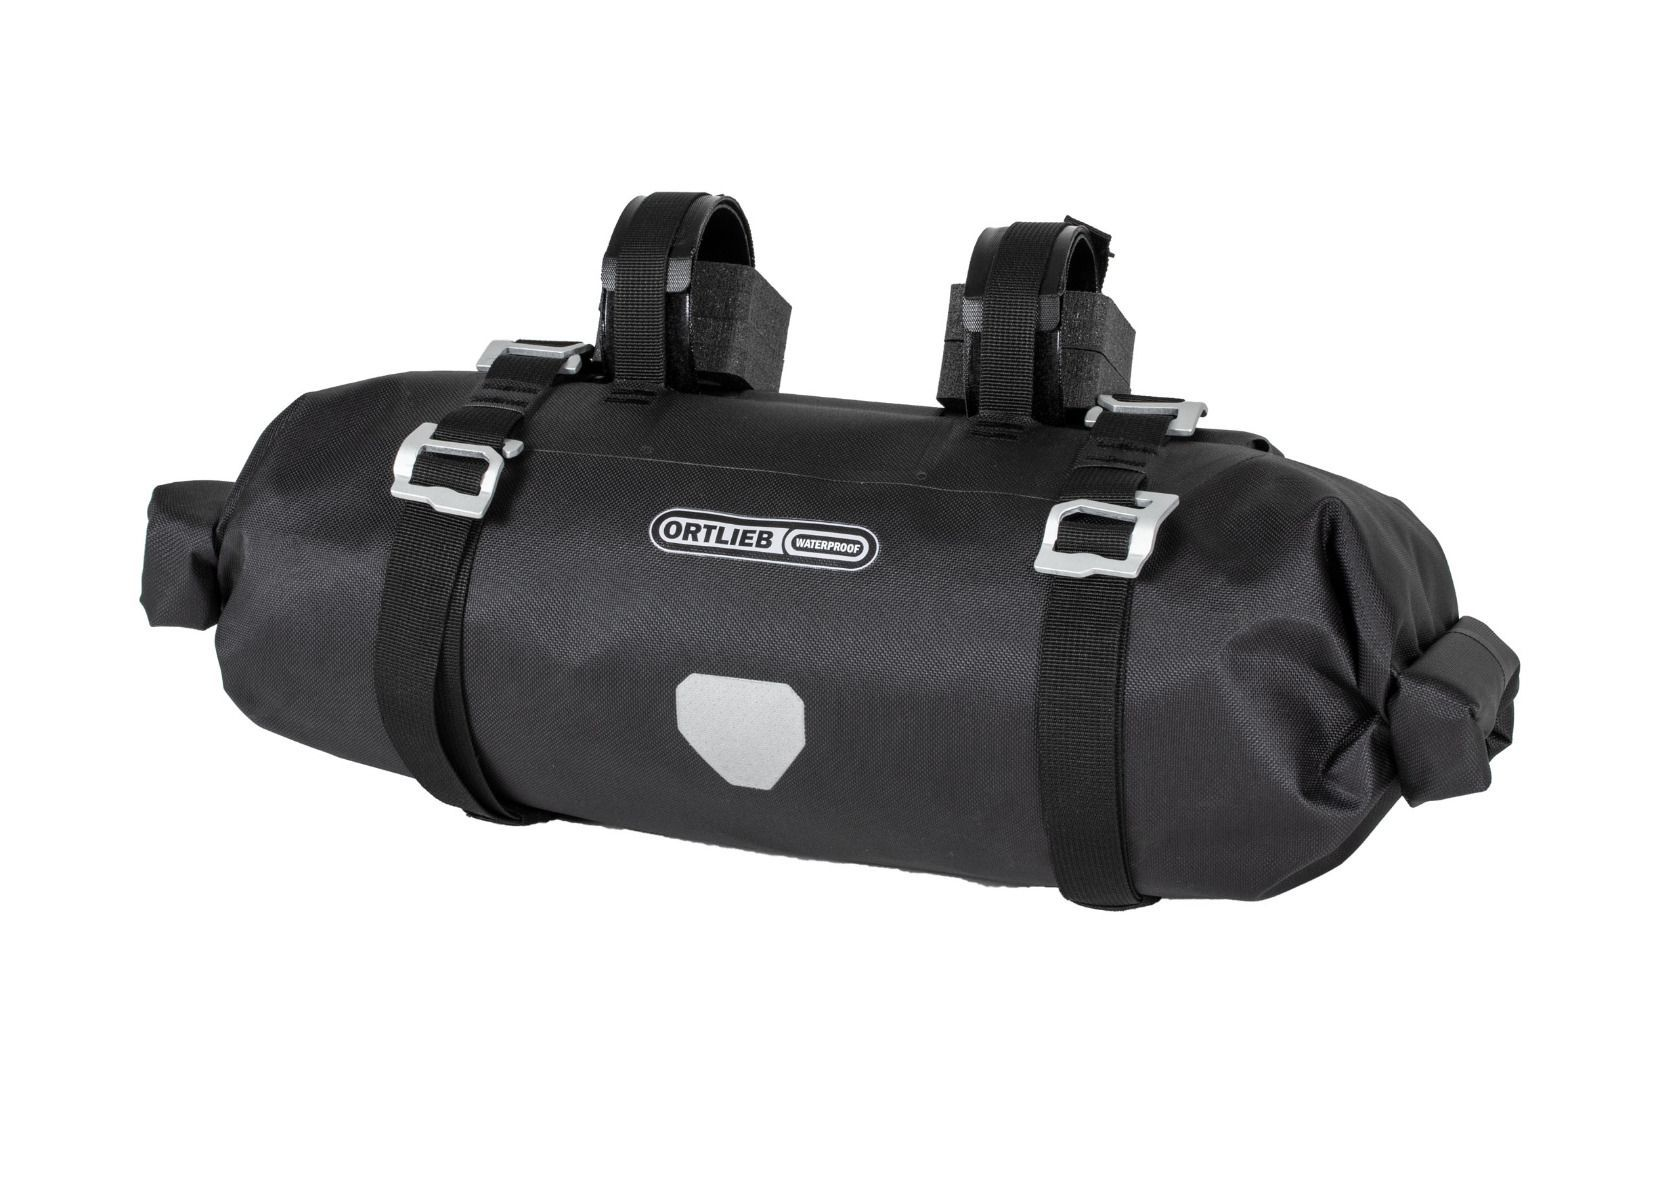 Ortlieb Bikepacking Limited Edition All Black 9 Litre Handlebar Pack | Travel bags